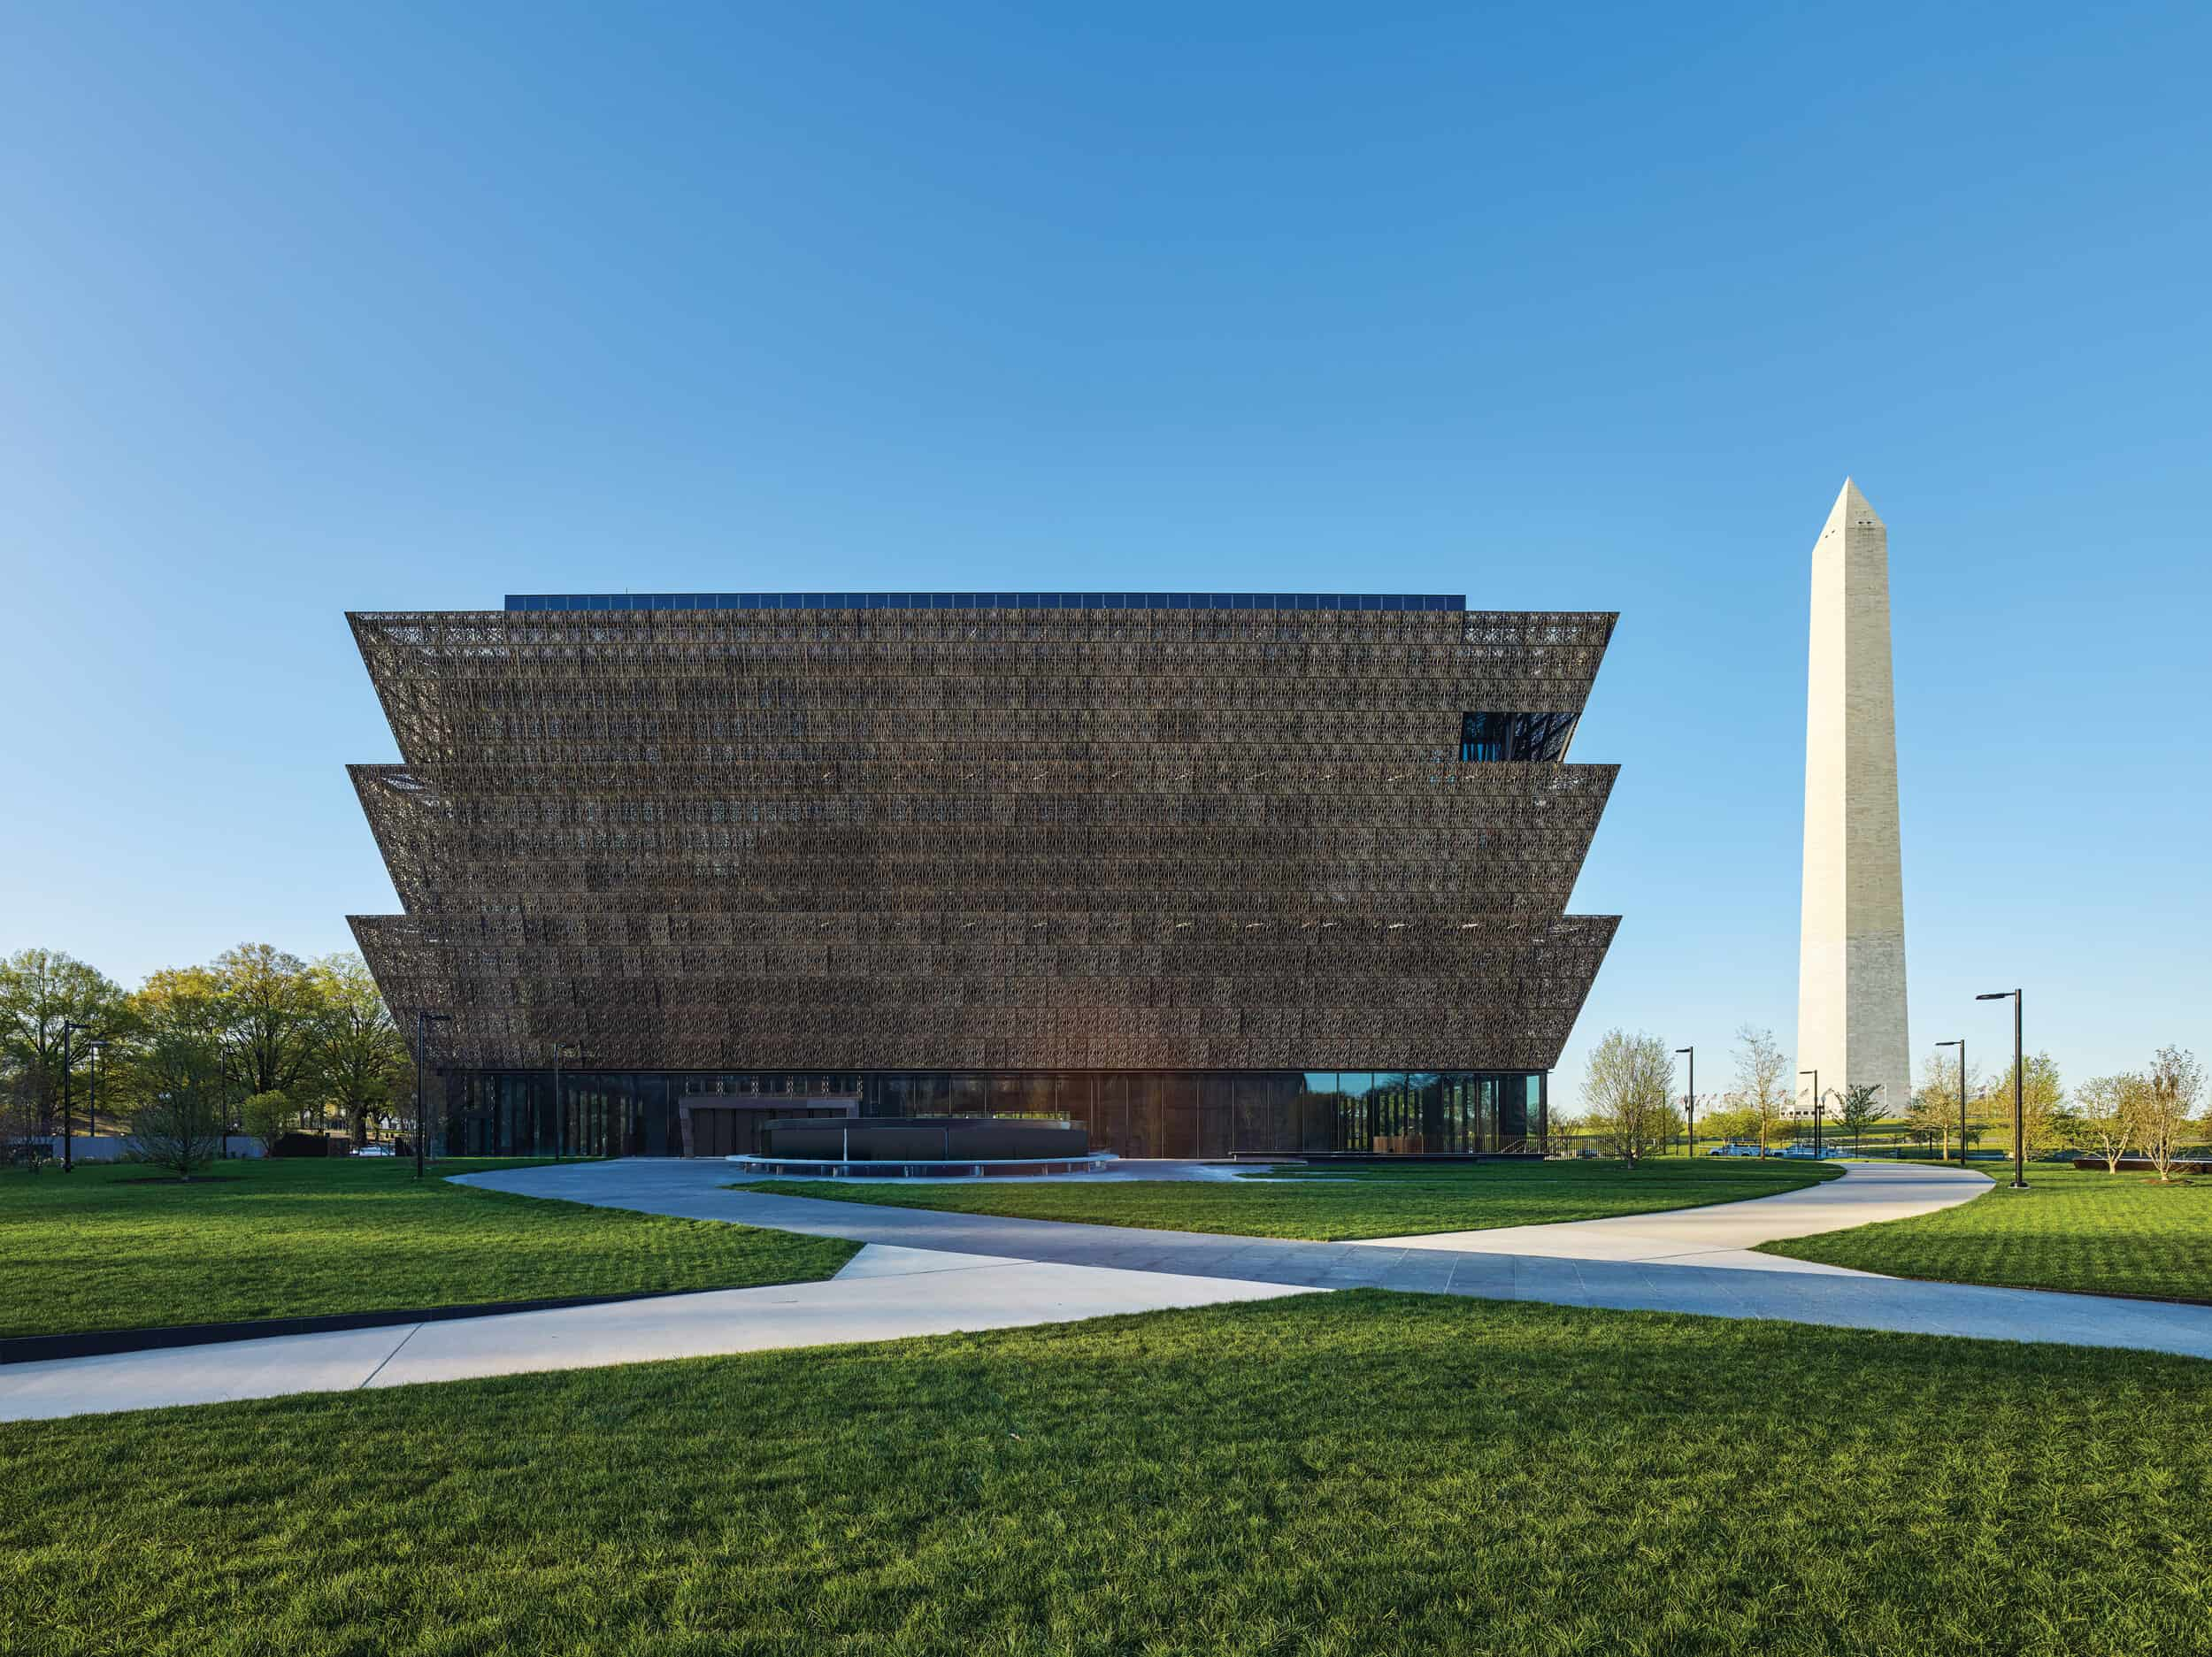 Touring the National Museum of African American History and Culture